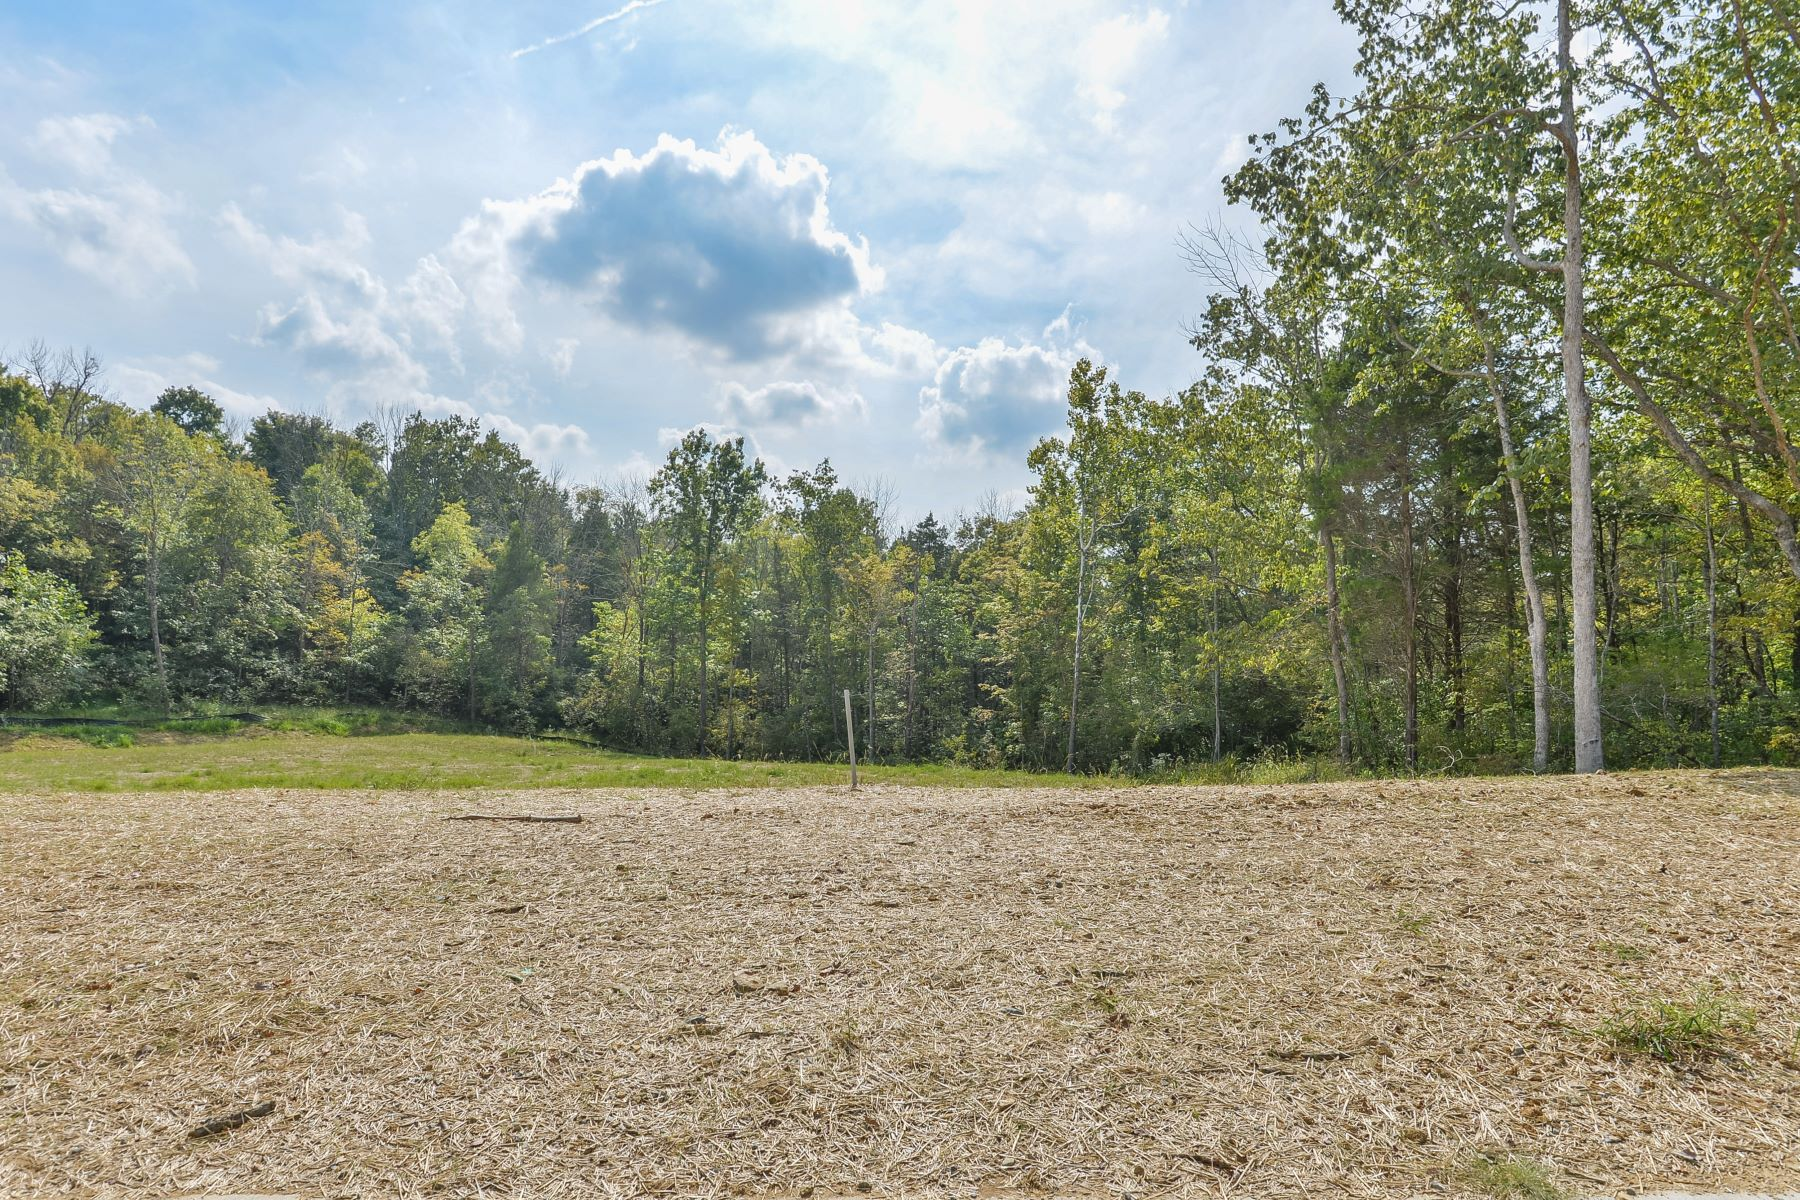 Land for Sale at 89 Shakes Creek Drive 89 Shakes Creek Drive Fisherville, Kentucky 40023 United States